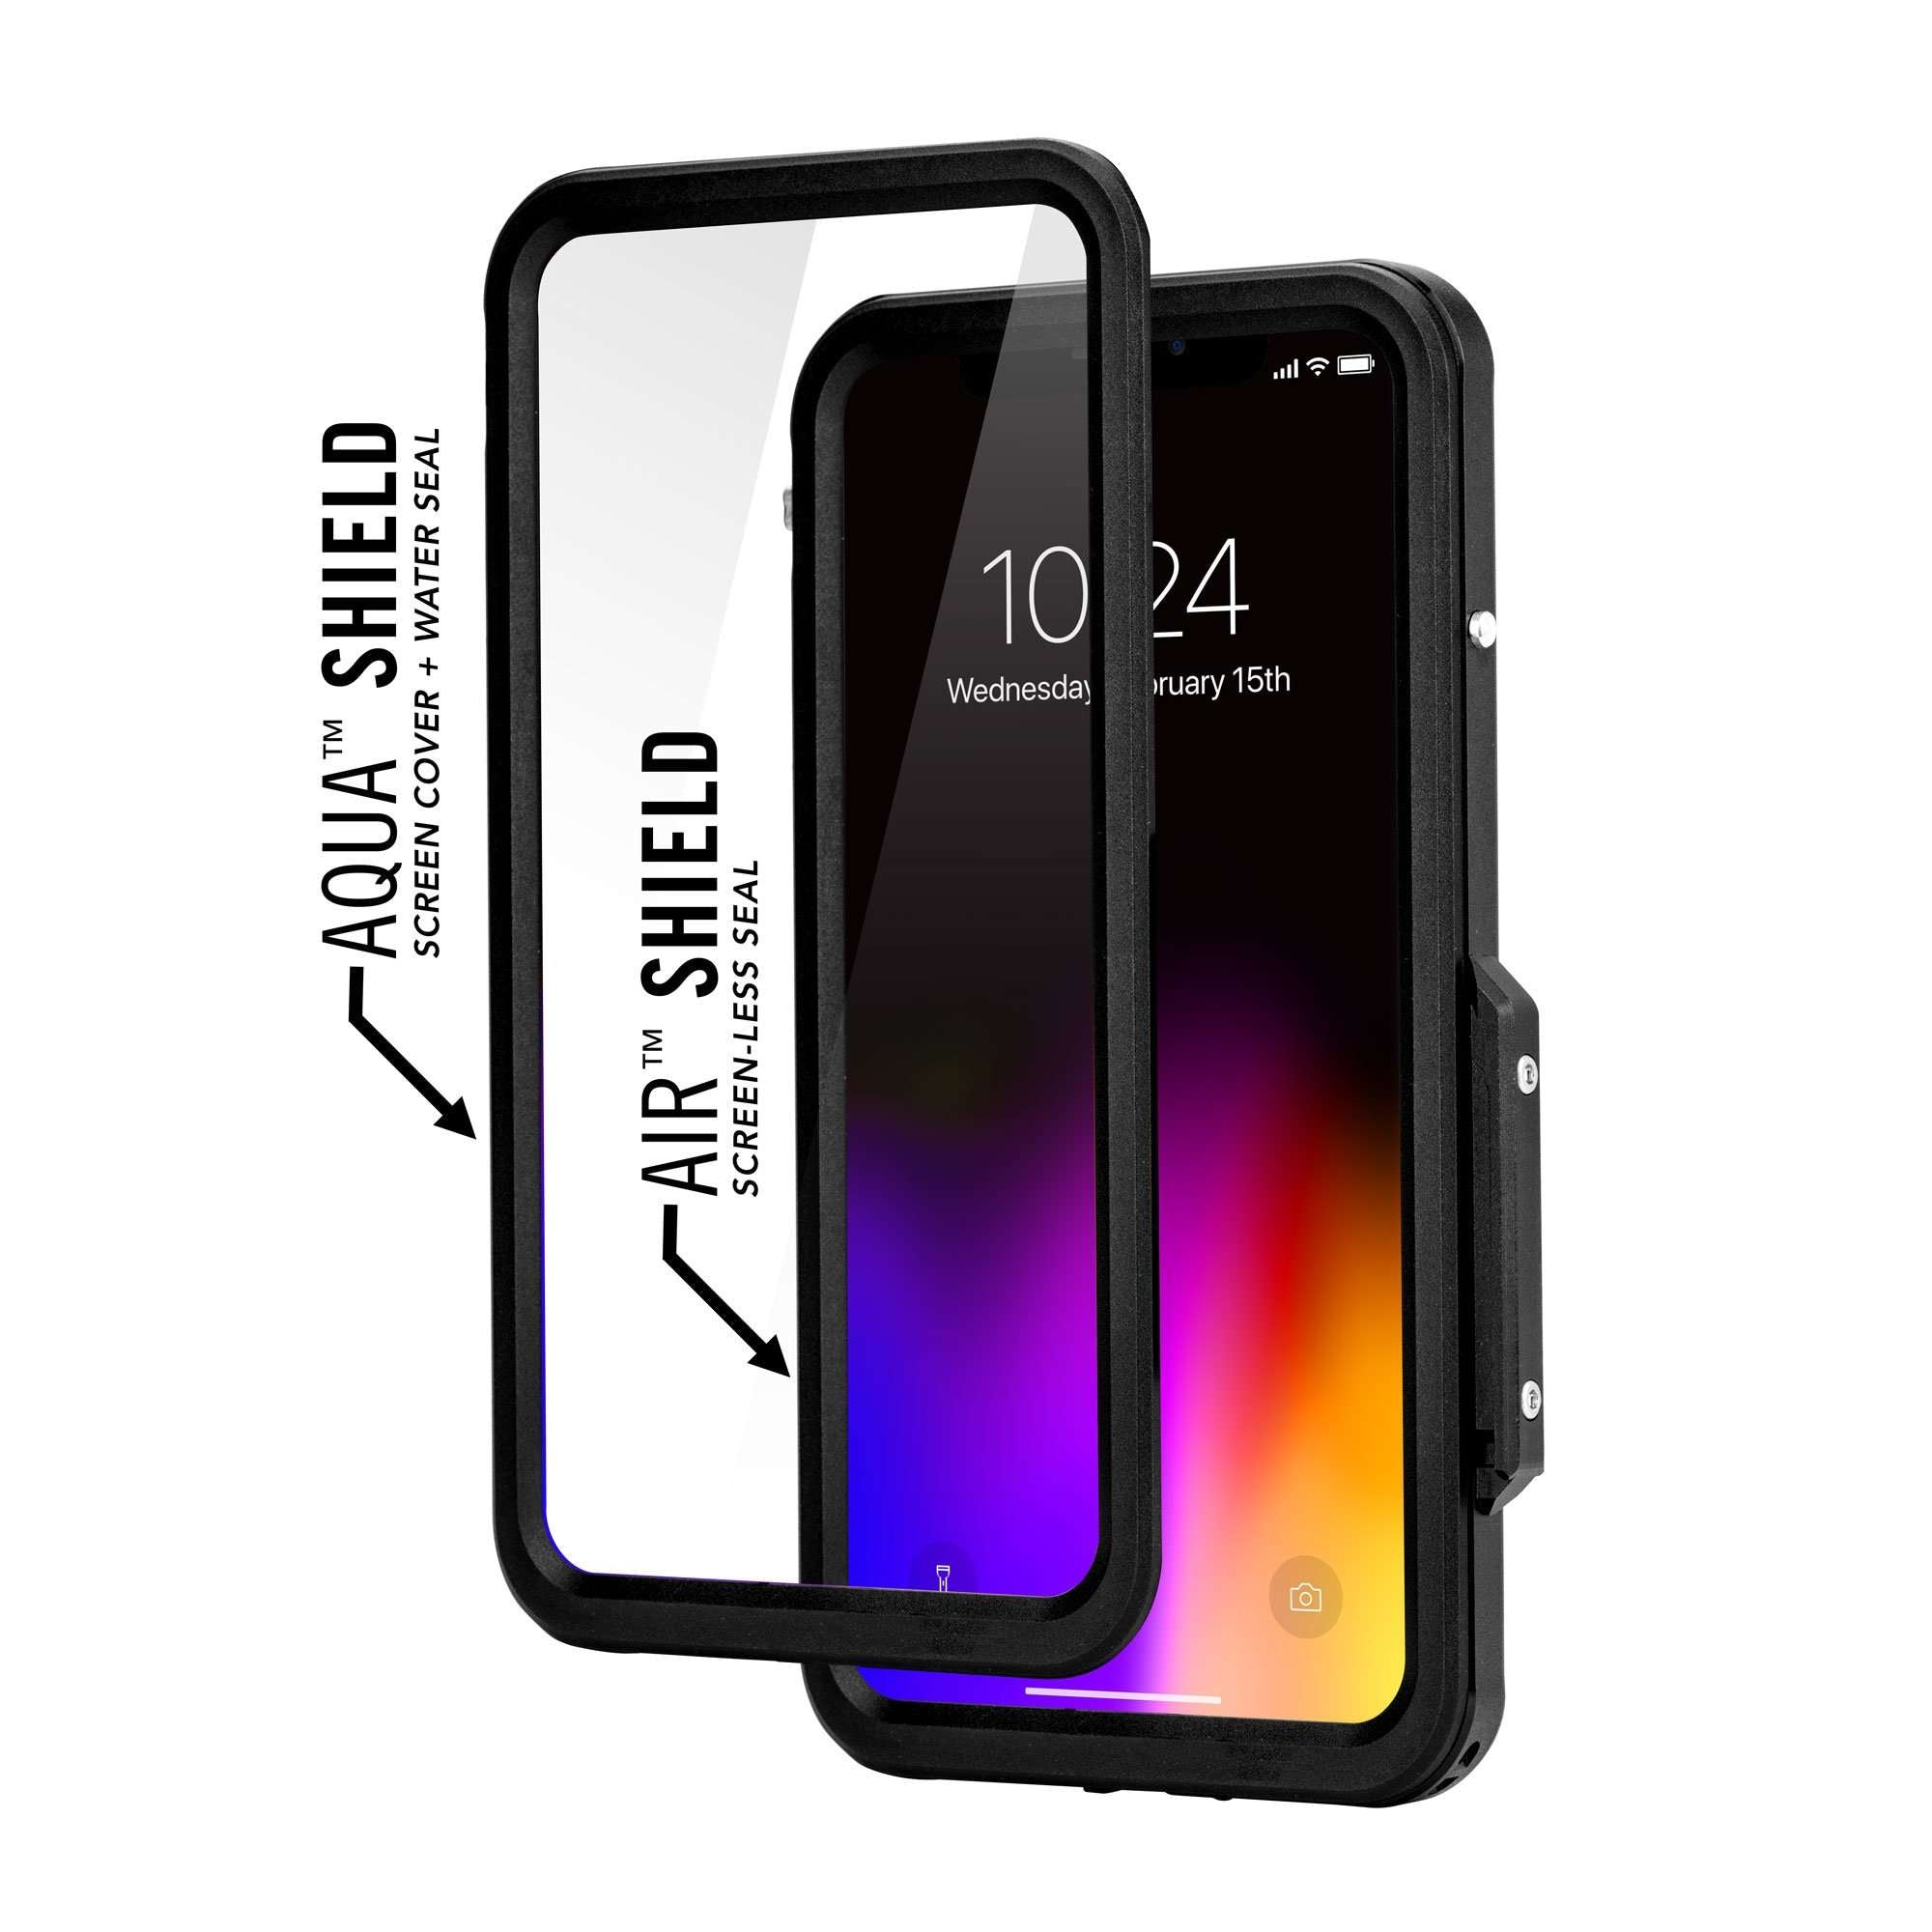 Aluminum Waterproof Iphone Xs Max Case Pro Hitcase